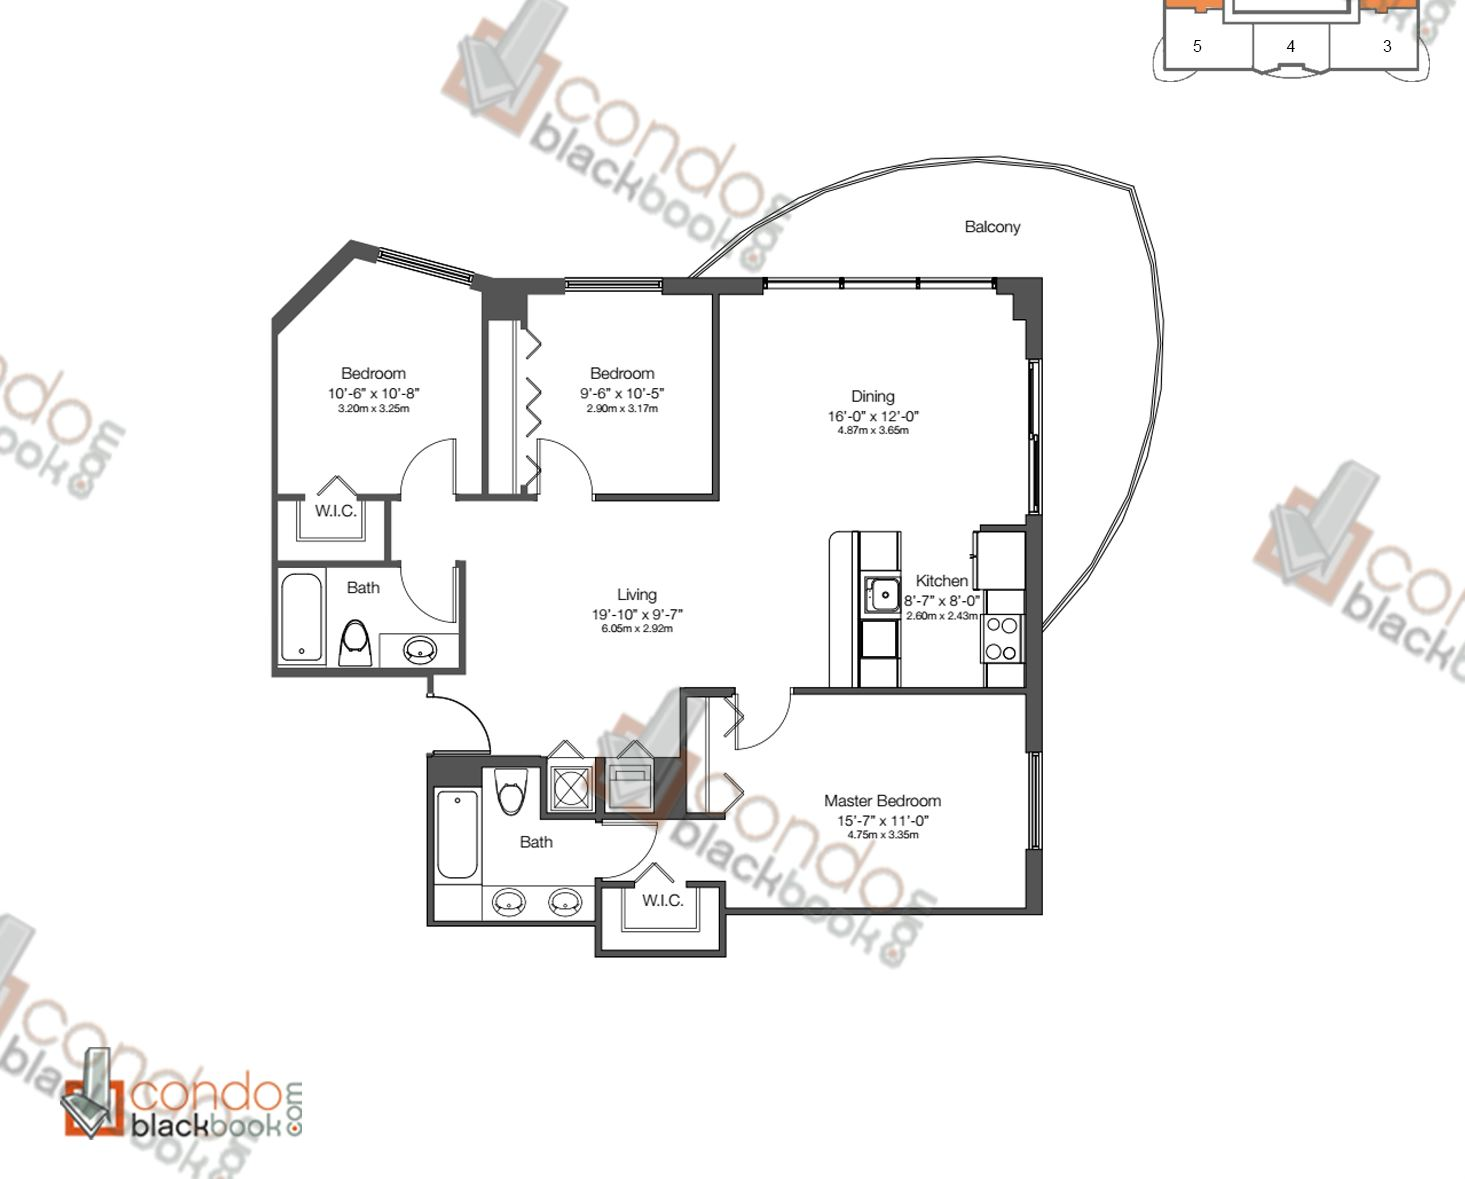 Floor plan for 23 Biscayne Edgewater Miami, model UNIT 2 & 6, line 02, 06, 3/2 bedrooms, 1,212 sq ft